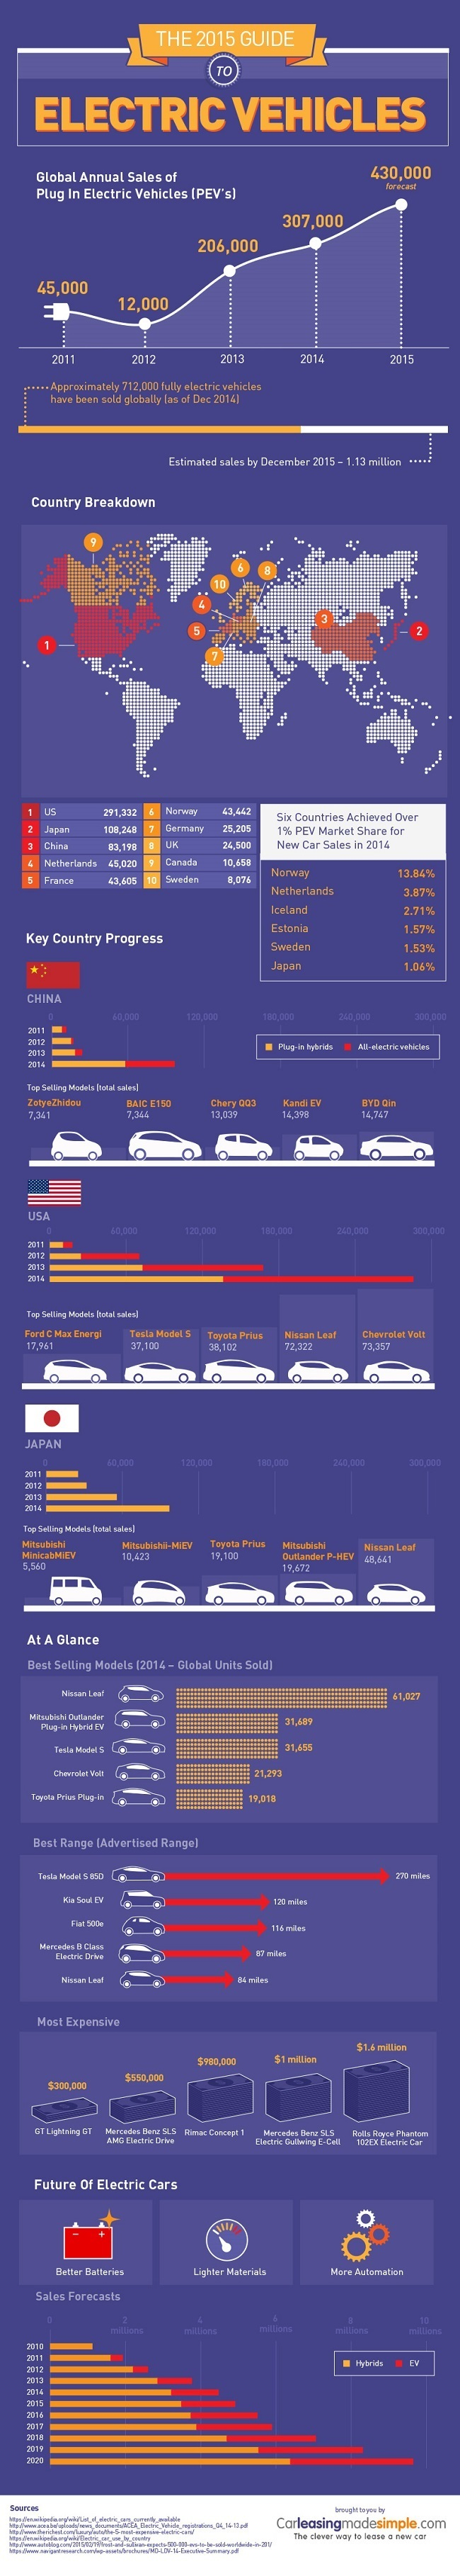 Electric cars in 2015 infographic